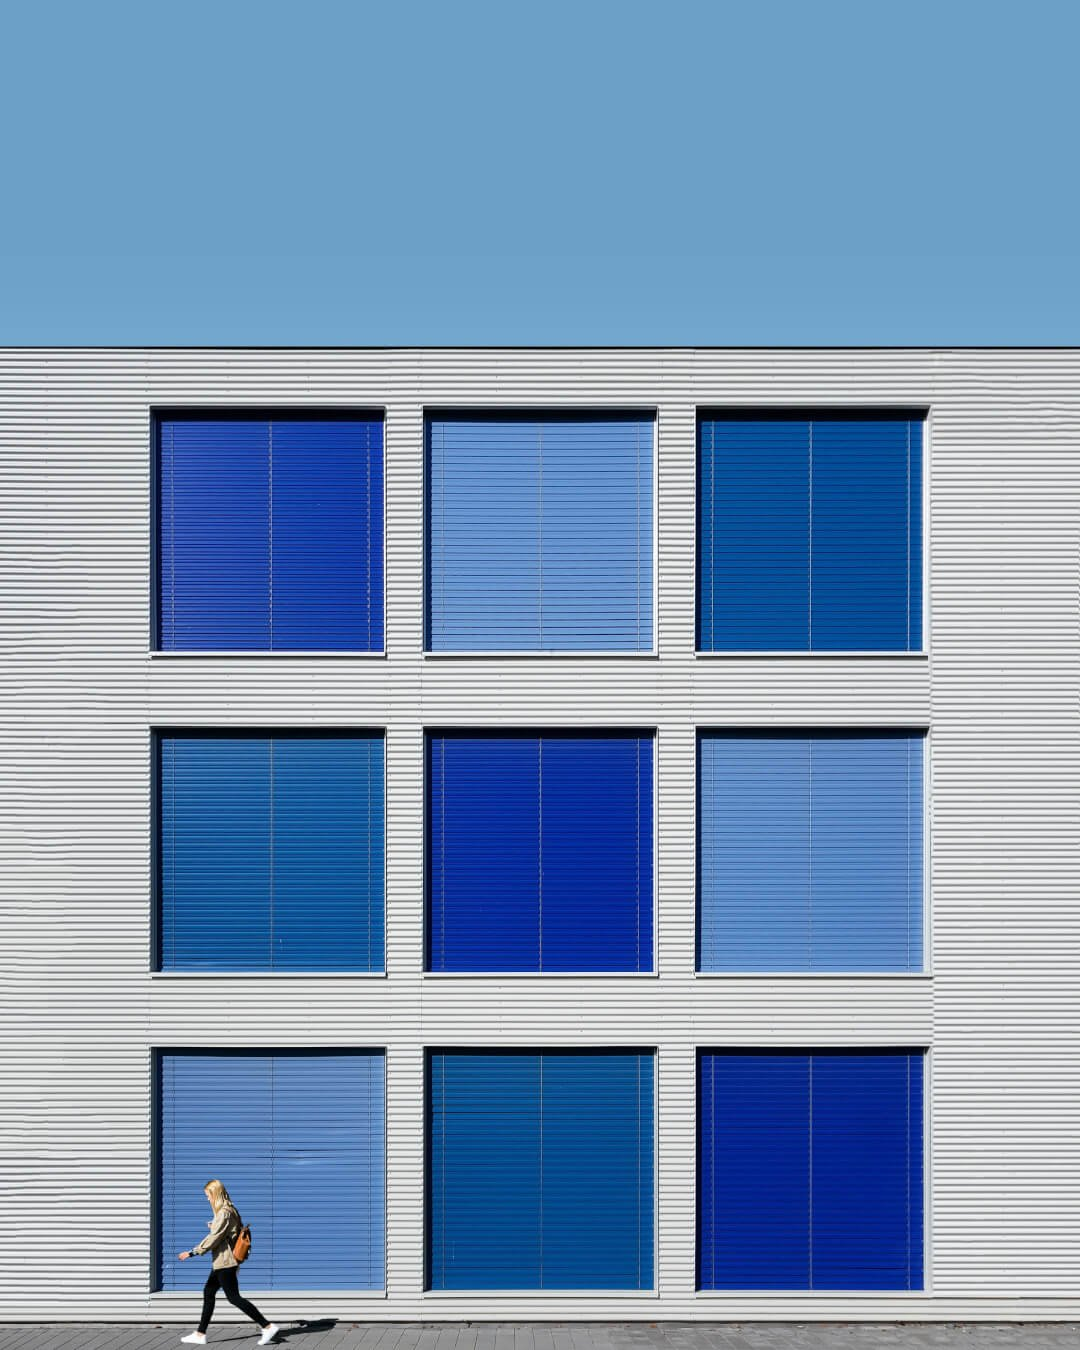 architecture photography of blue building